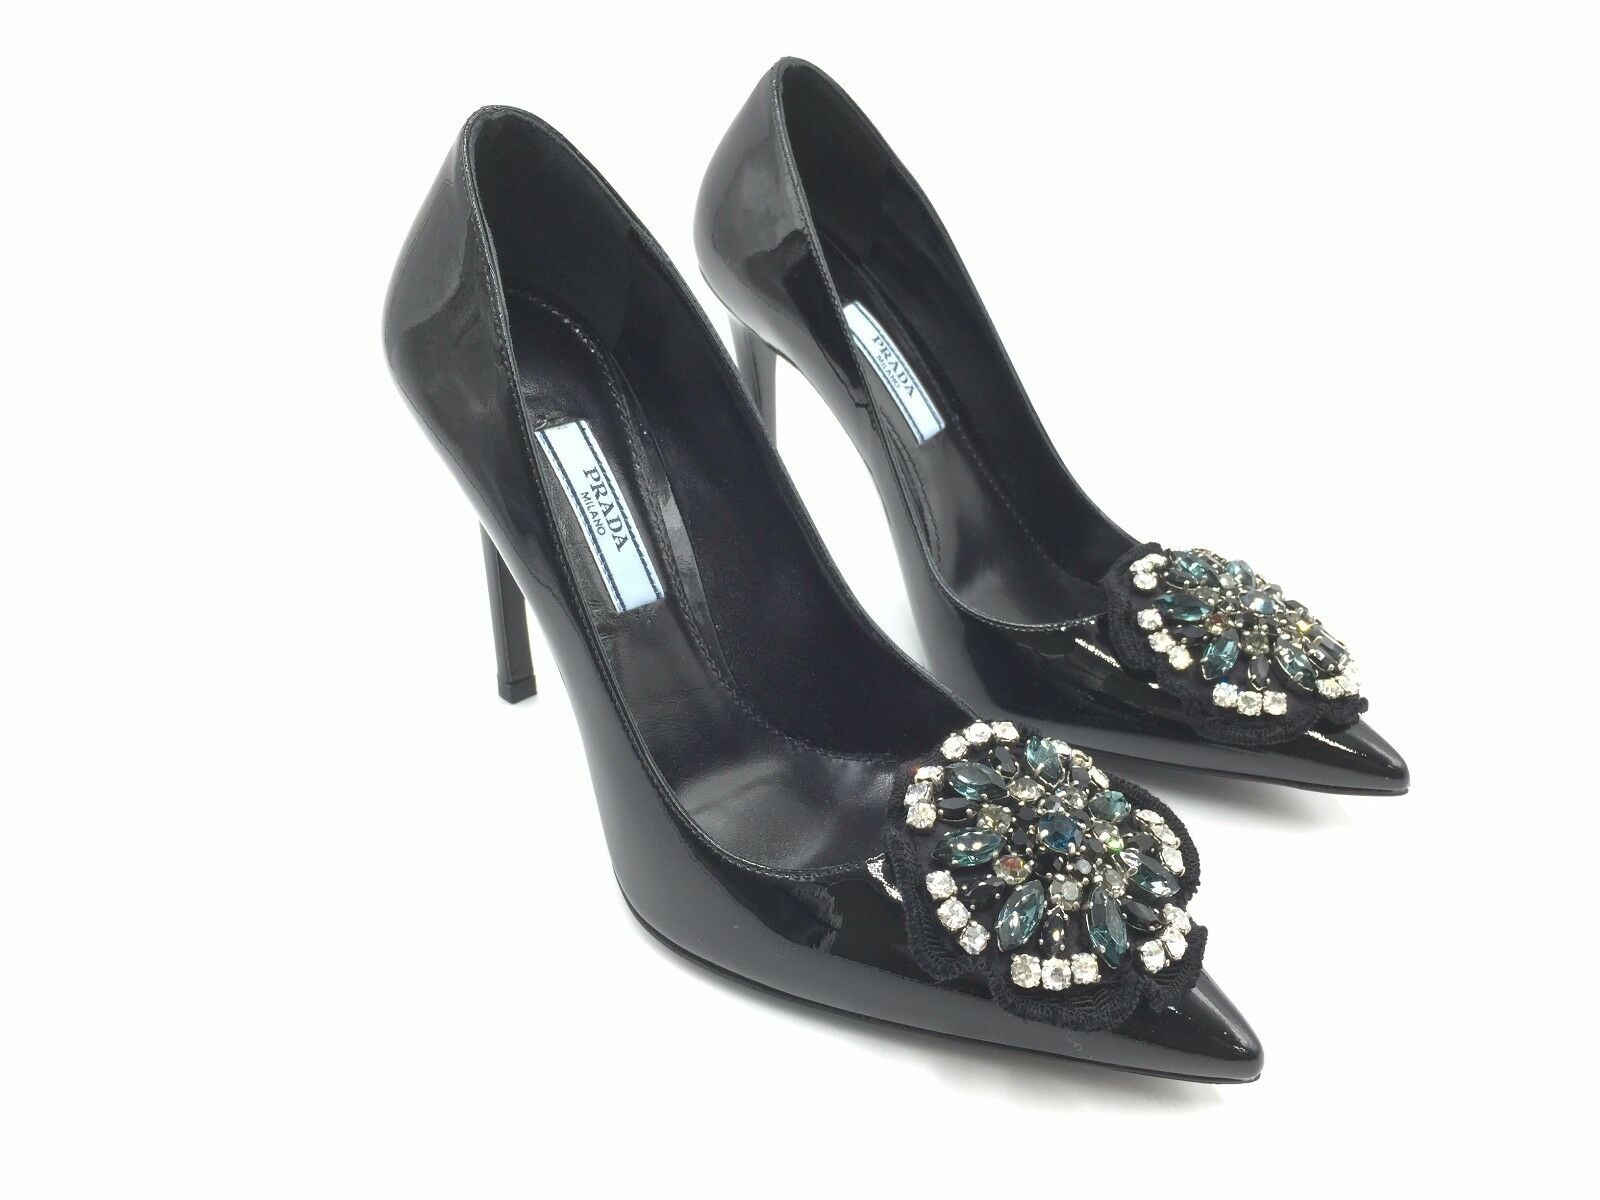 2650 PRADA WOMEN BLACK CRYSTAL LEATHER ITALY SHOES HIGH HEELS PUMPS 35.5 5.5 US